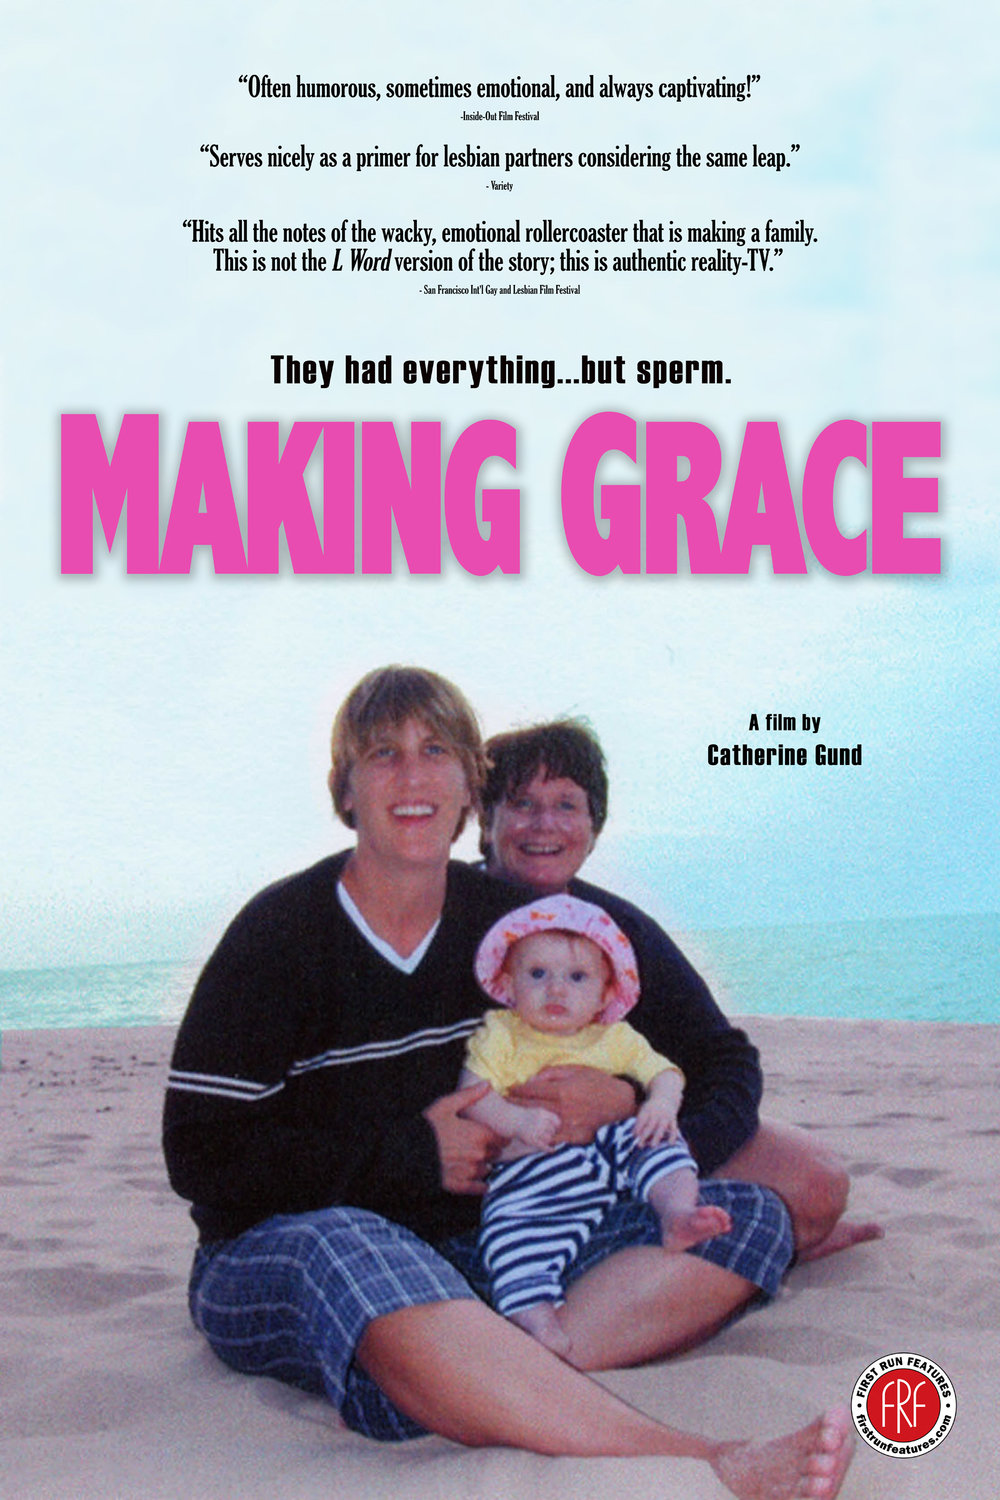 MAKING GRACE poster, dimensions 24 x 36, $5   Ann Krsul and Leslie Sullivan want to be mothers together. Ann will carry the baby, and Leslie will leave her job to stay at home and raise their child. Choosing the route of the anonymous sperm bank, they hope to match Leslie's vital statistics so that Ann can give birth to a baby with the potential to look like them both. Learn more:  aubinpictures.com/mgrace/   Ships via USPS in 2 to 9 business days.